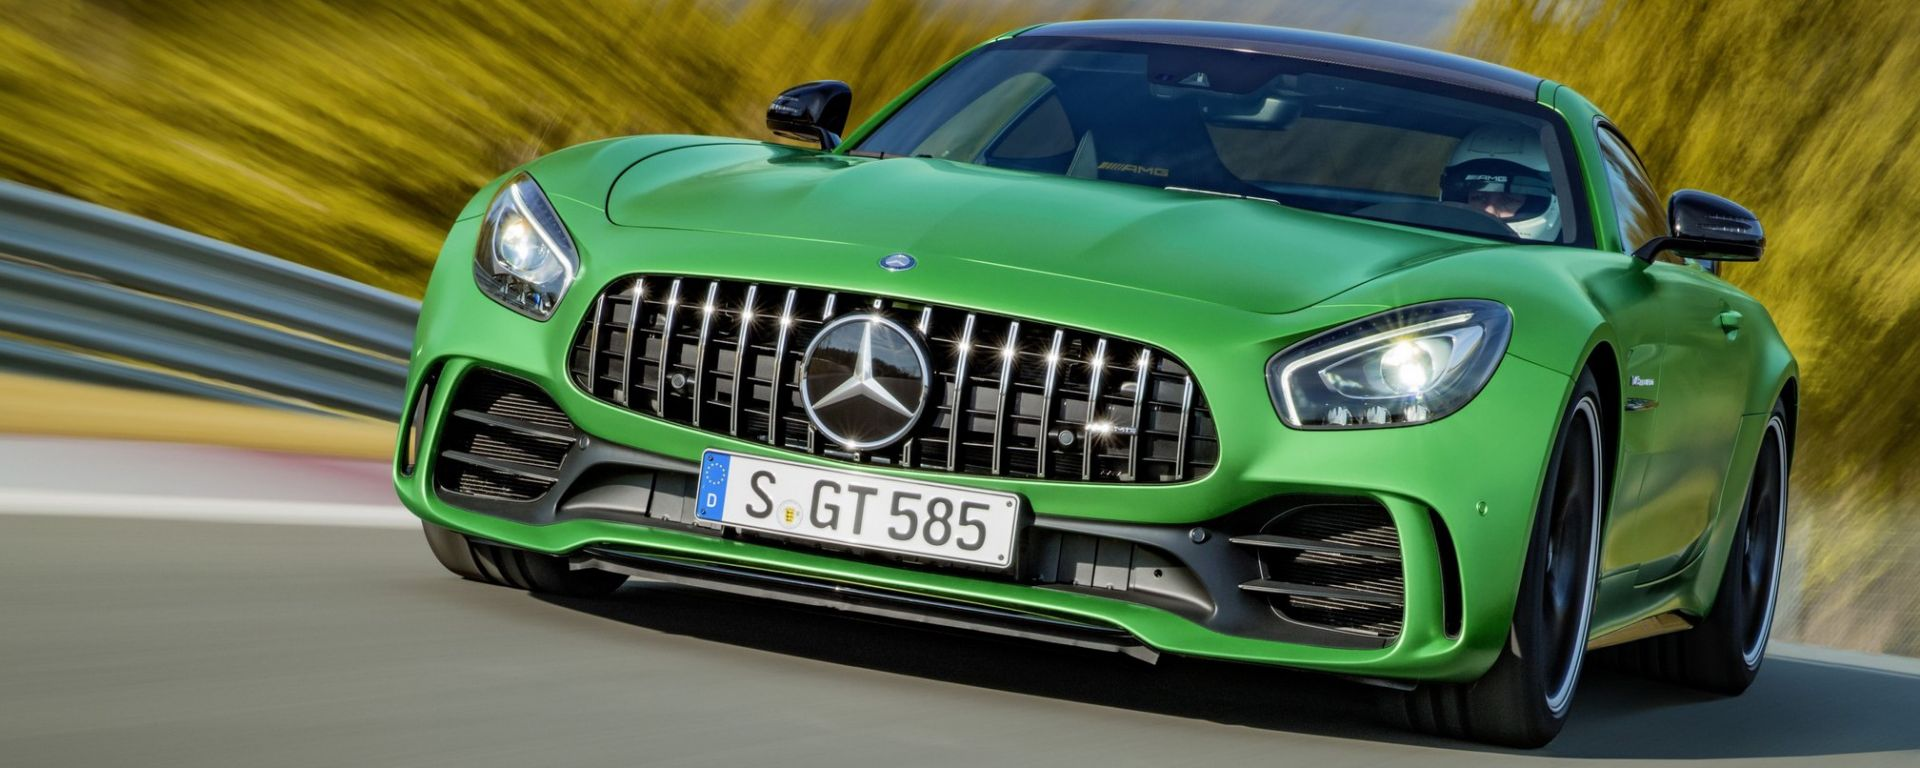 Mercedes-AMG GT R: debutto al Goodwood Festival of Speed